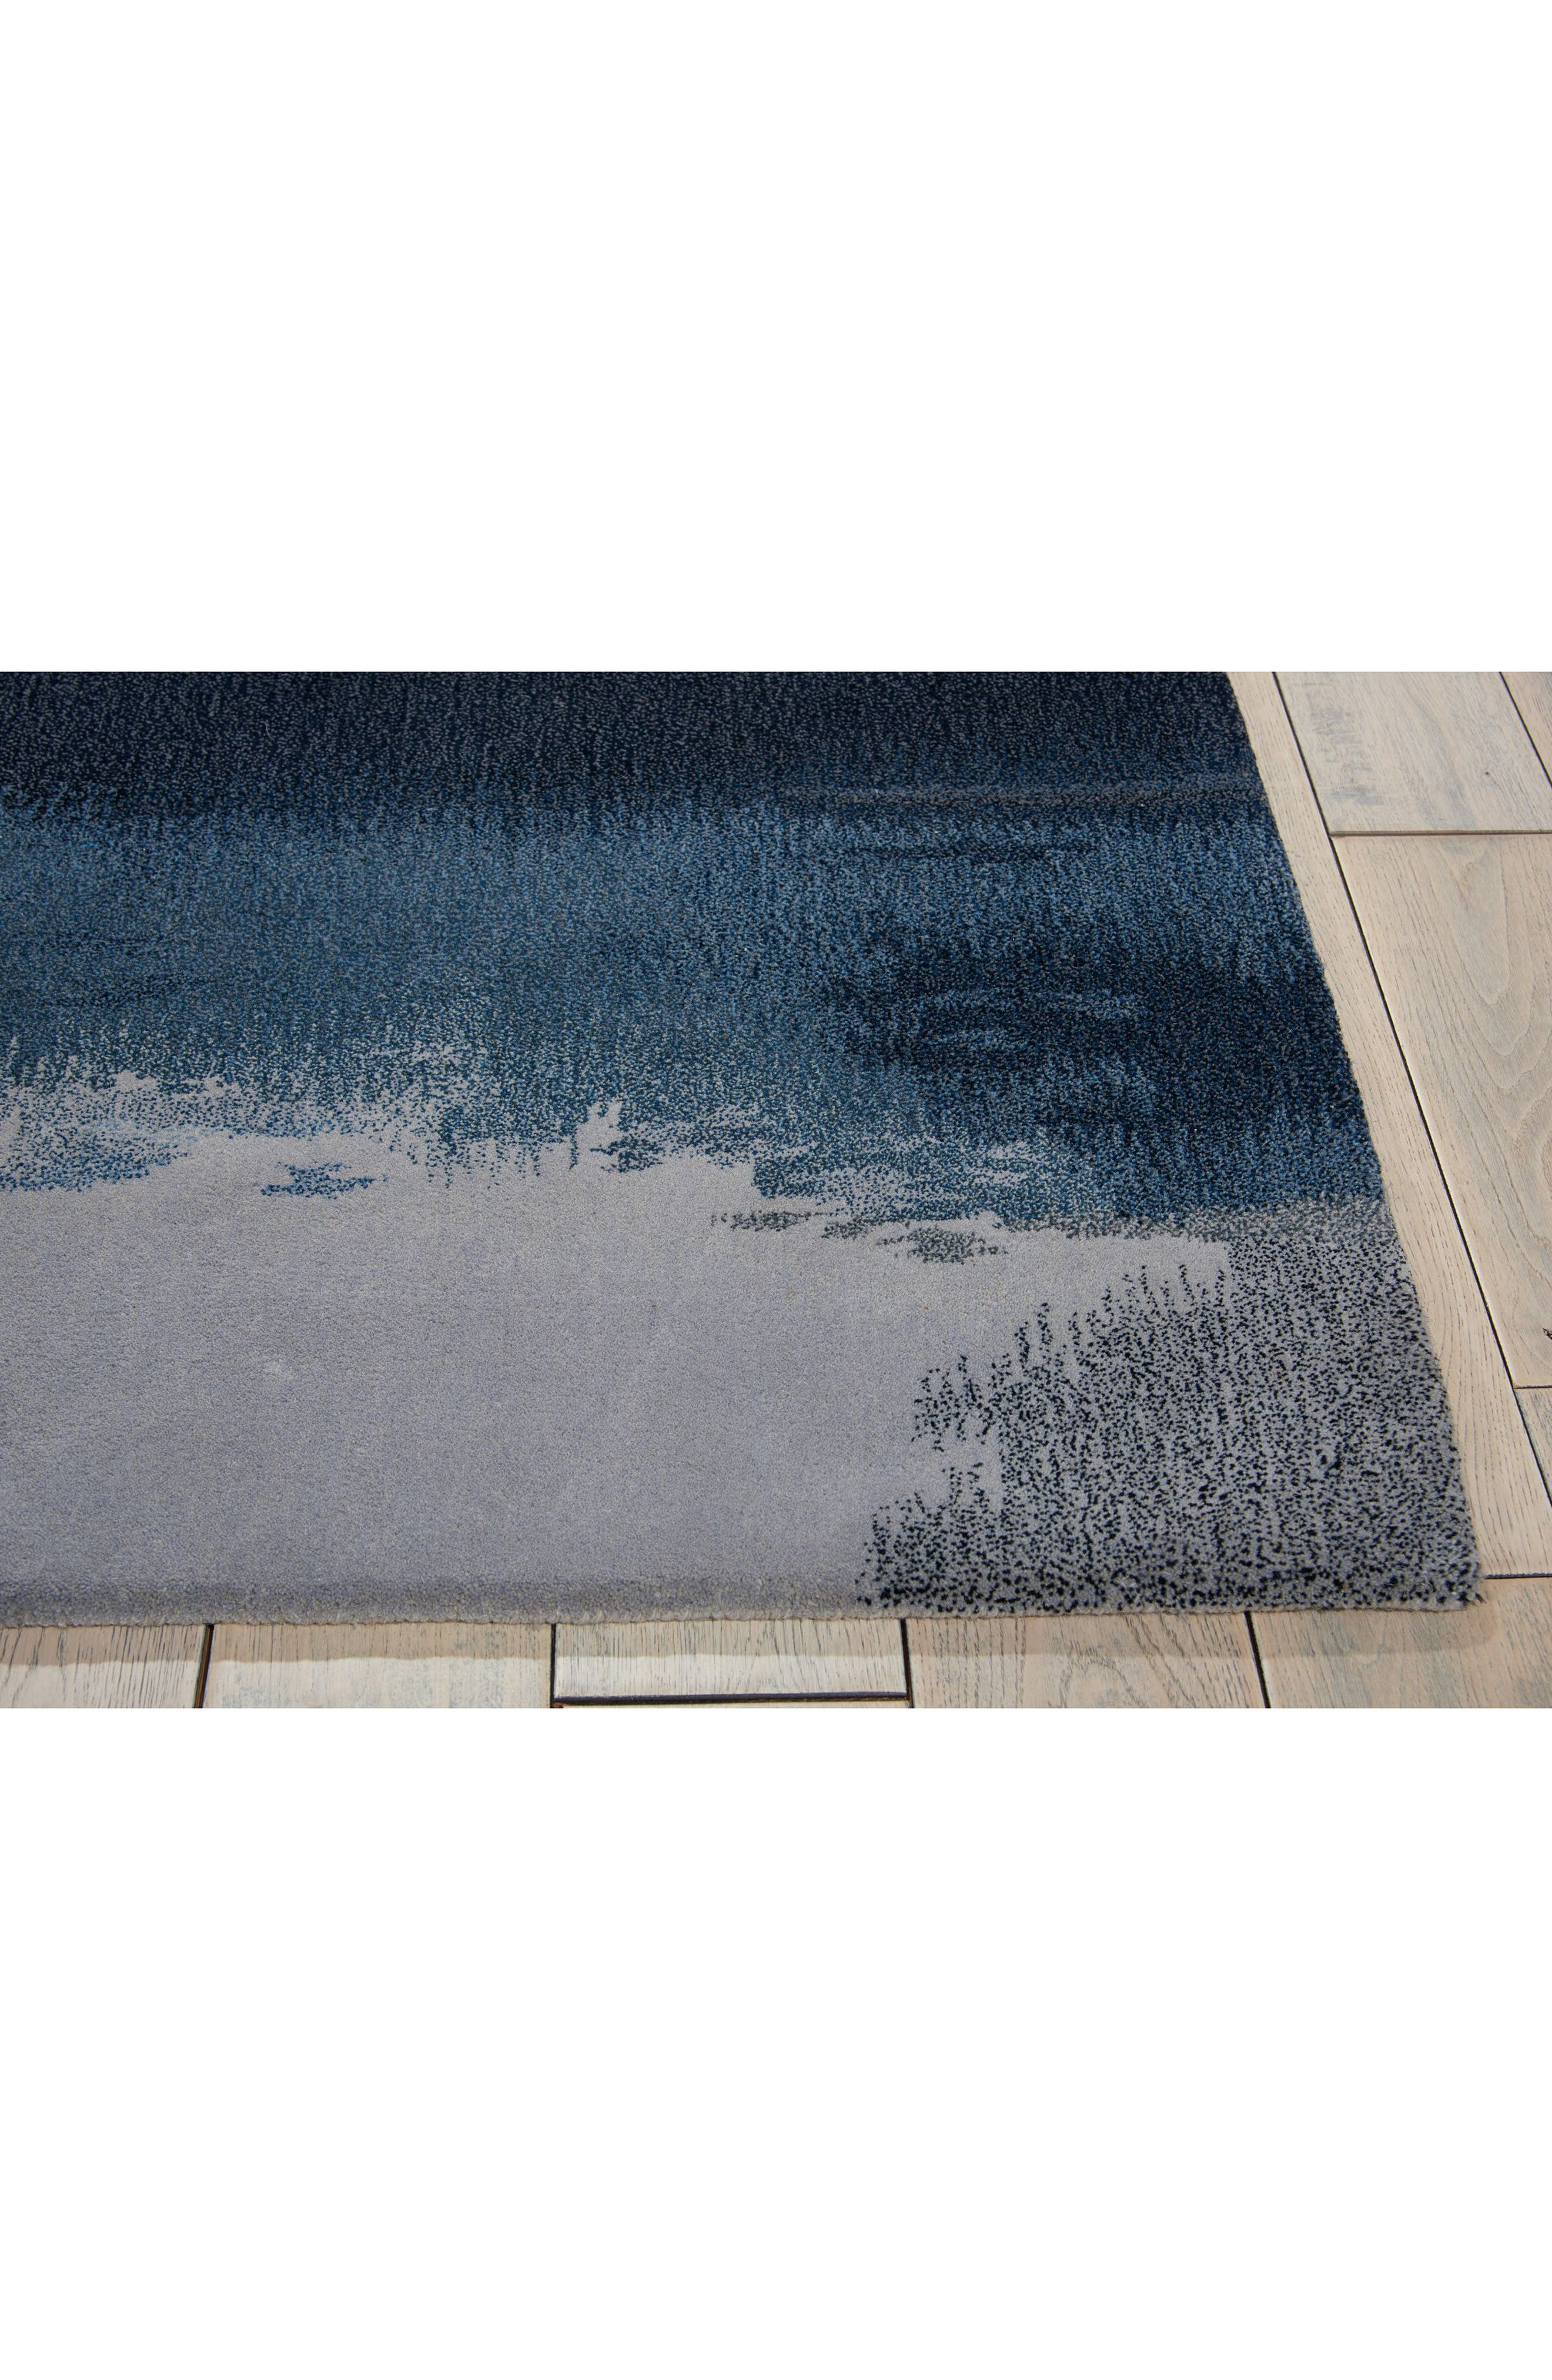 Luster Wash Wool Area Rug,                             Alternate thumbnail 15, color,